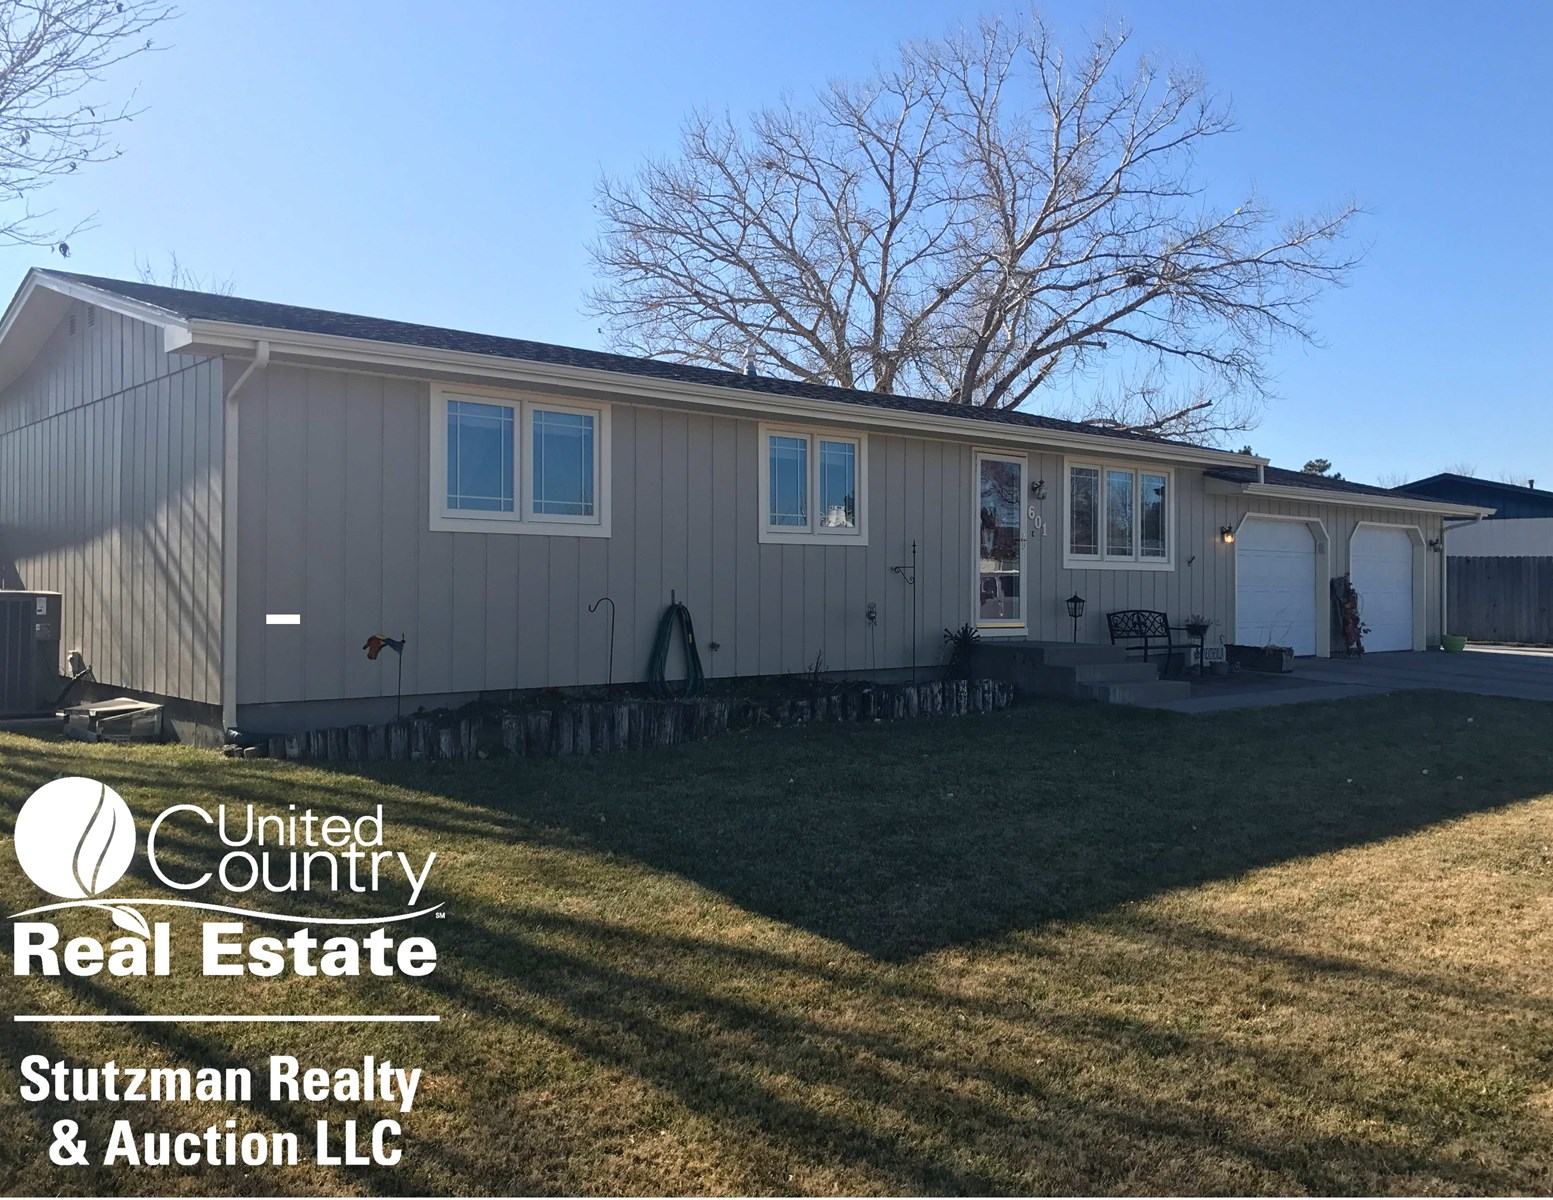 FIVE BEDROOM HOME FOR SALE IN ULYSSES, KANSAS